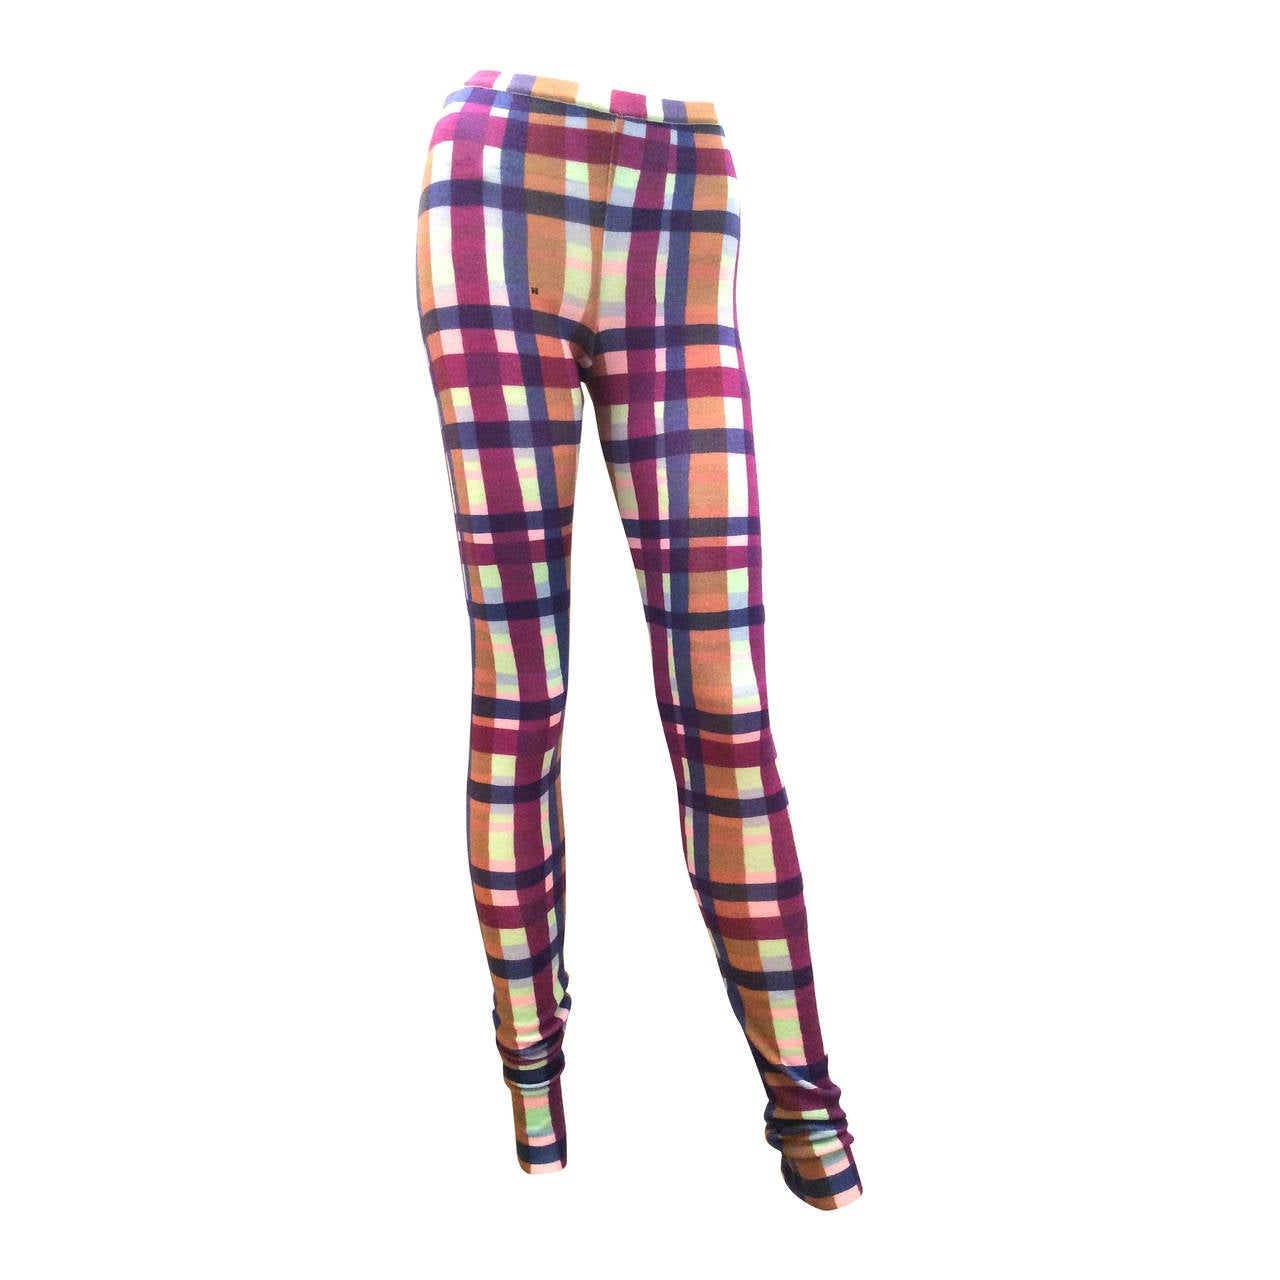 Missoni Stretch Pants / Leggings - Multi-Colored Criss Cross Pattern